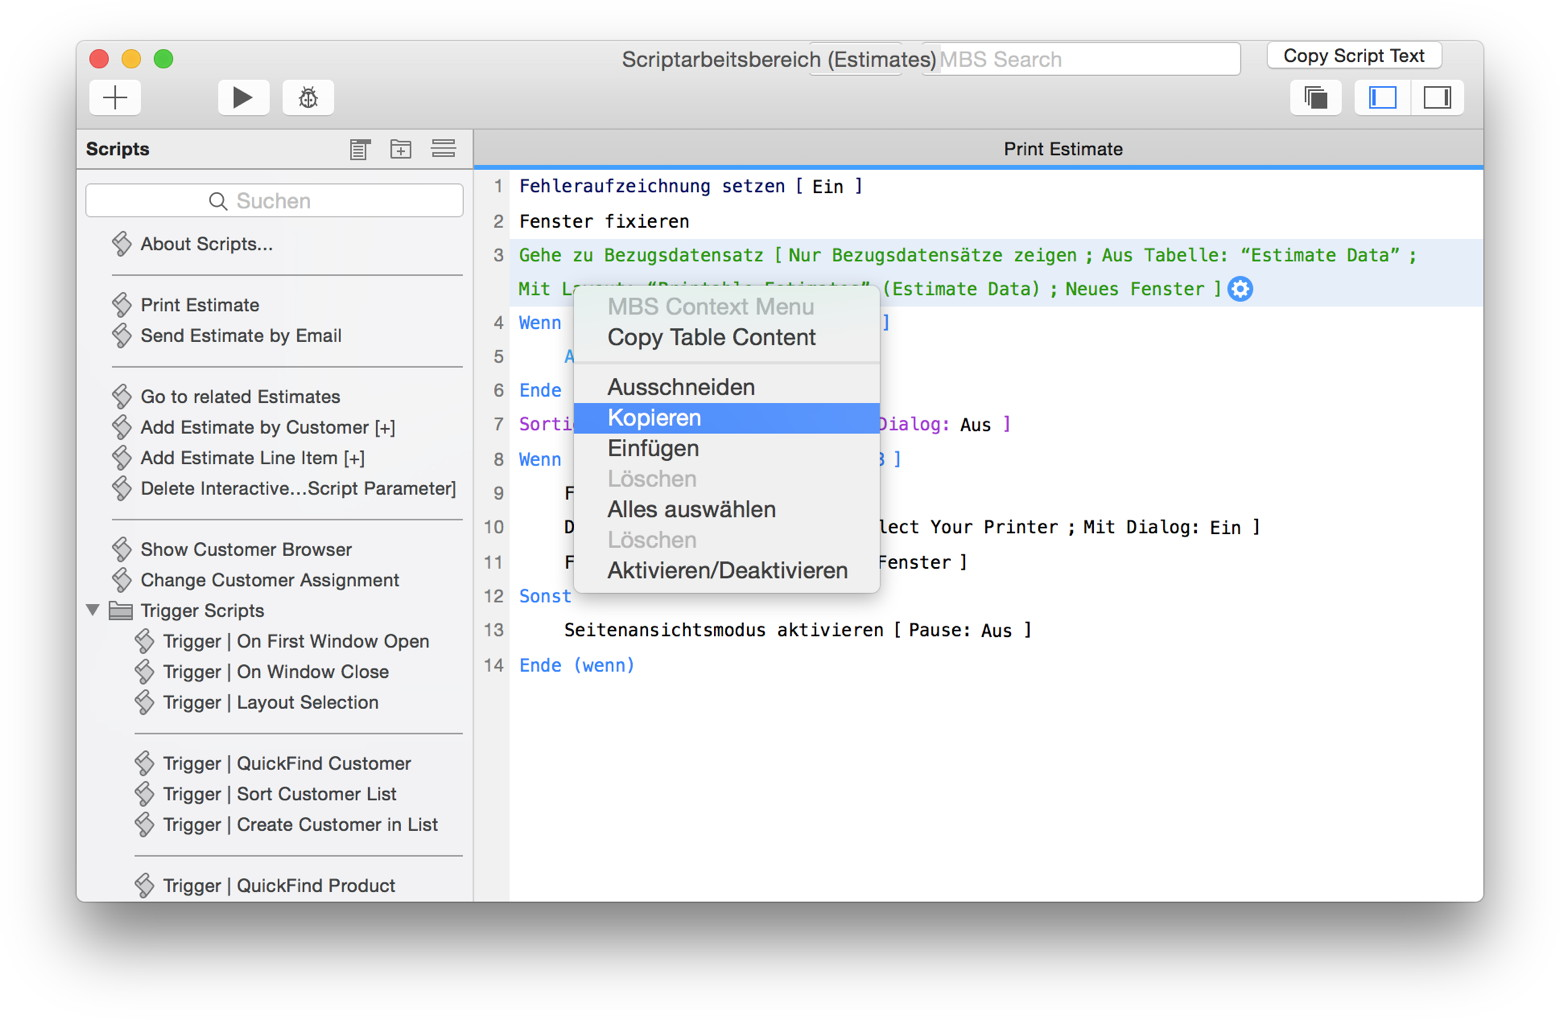 FileMaker 15 Script Workspace